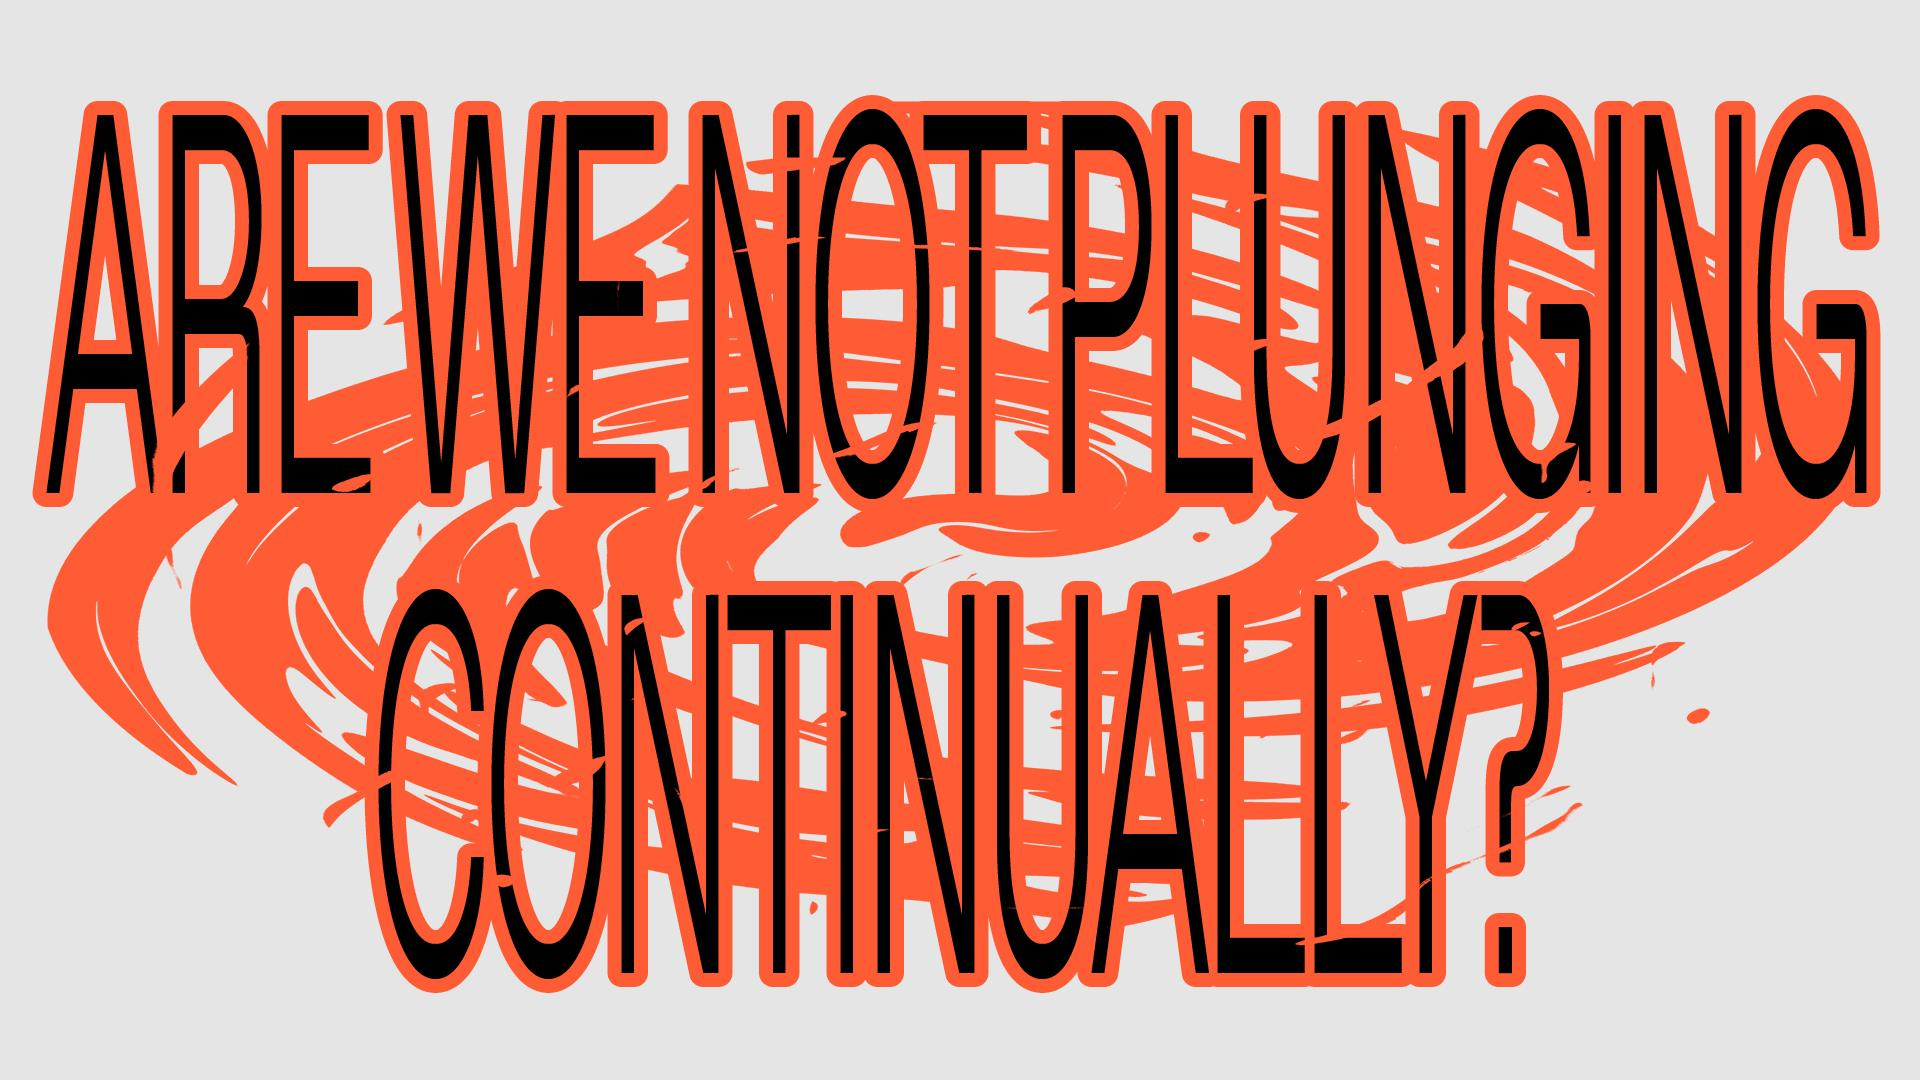 Are we not plunging continually?